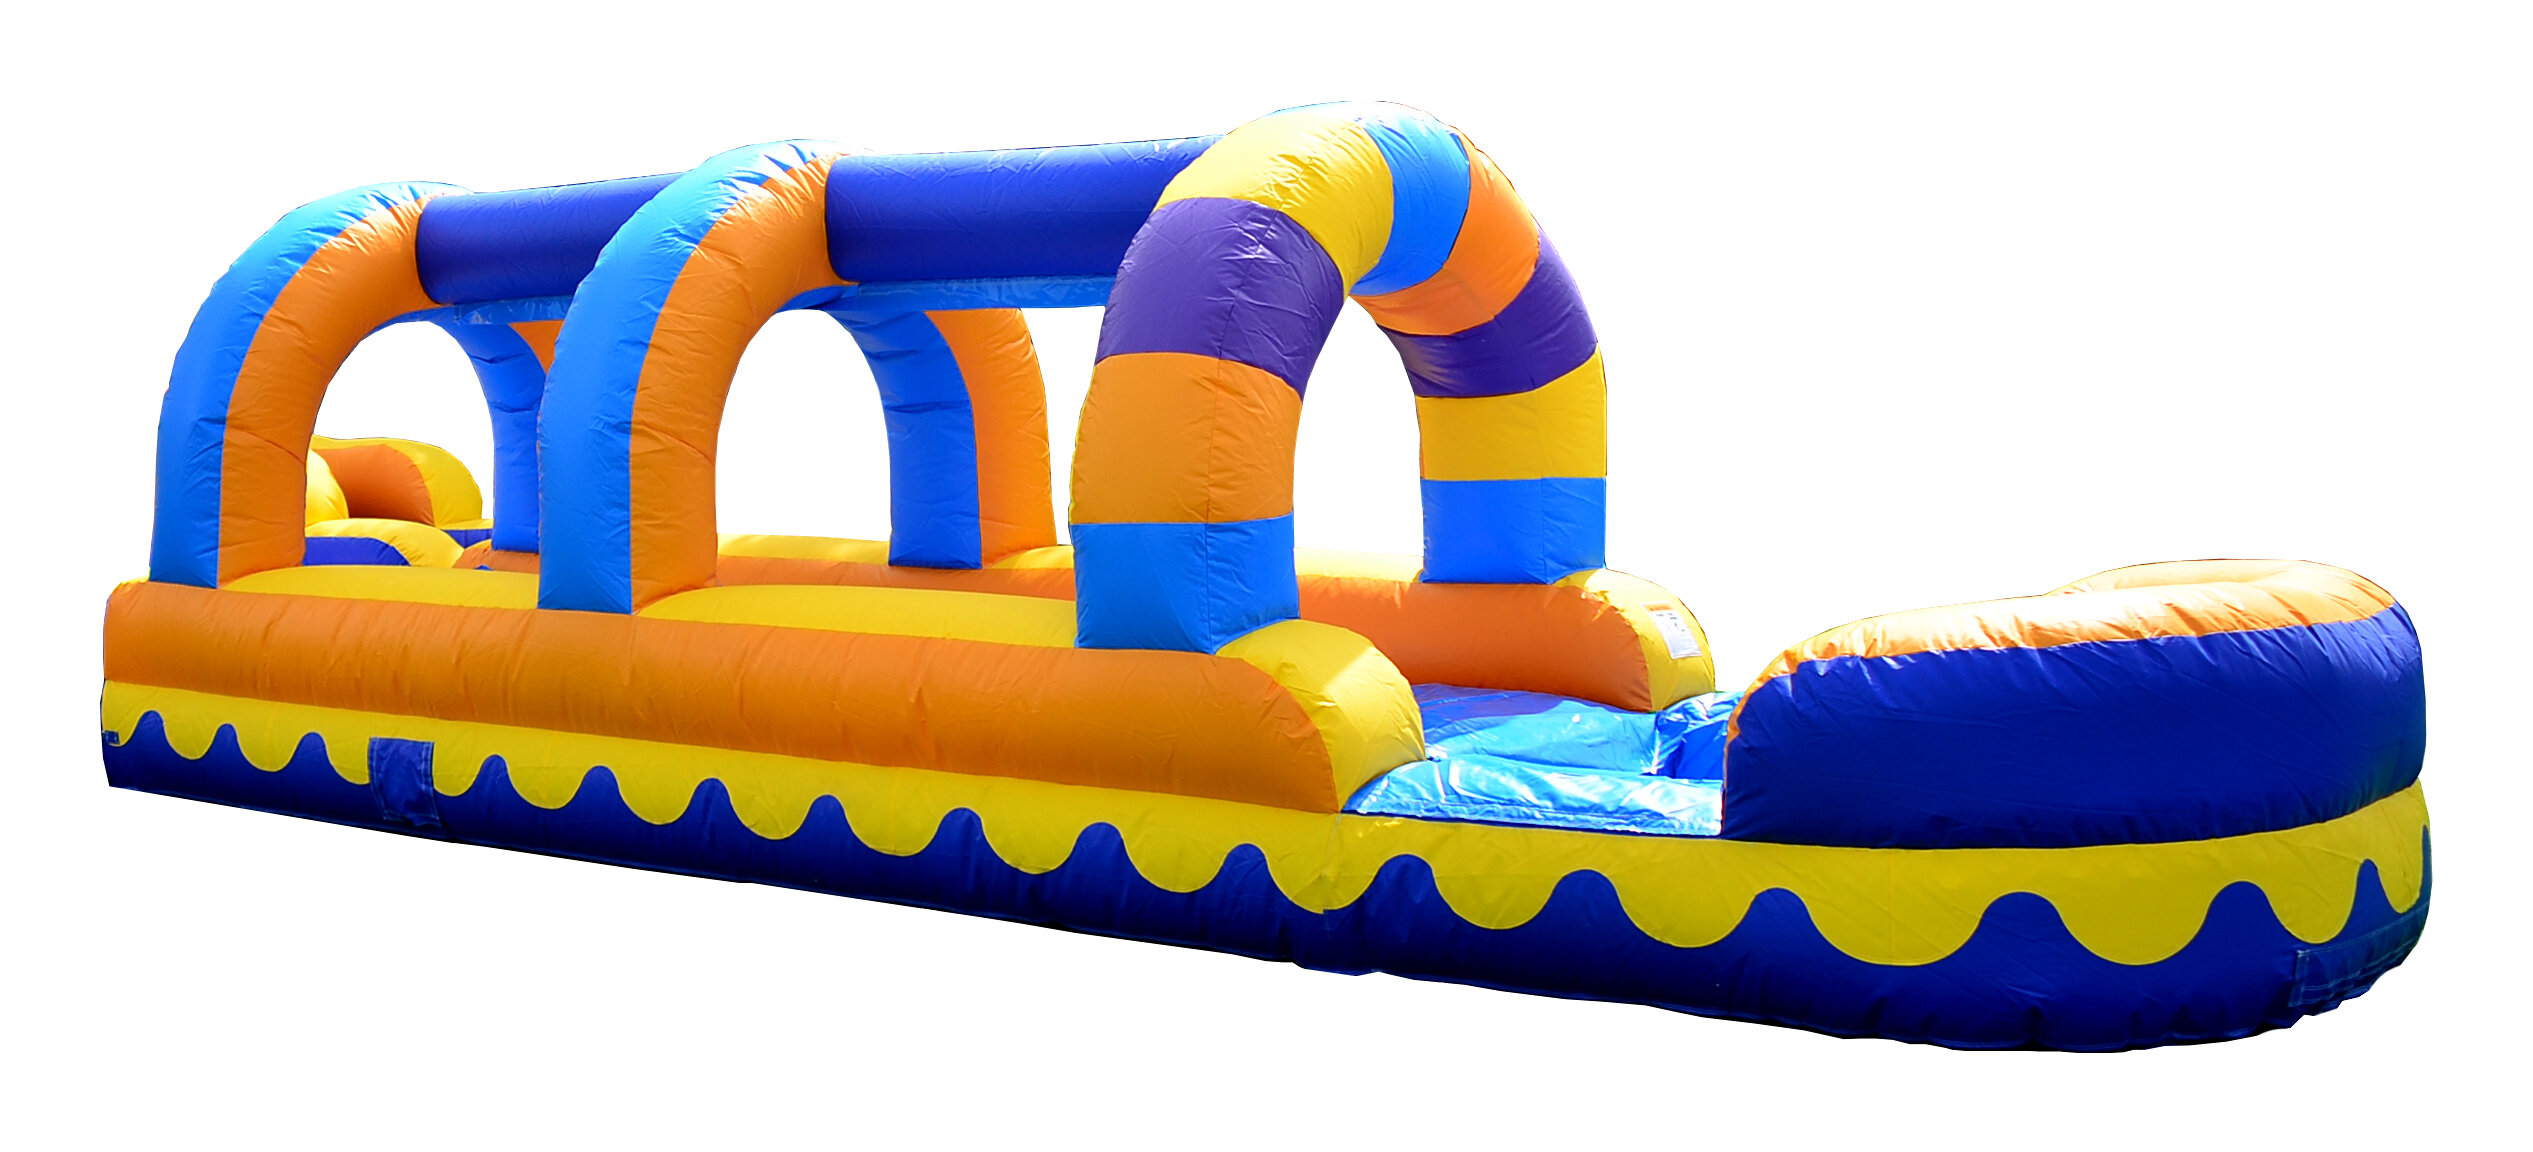 Dolphin Splash Slip Bounce House